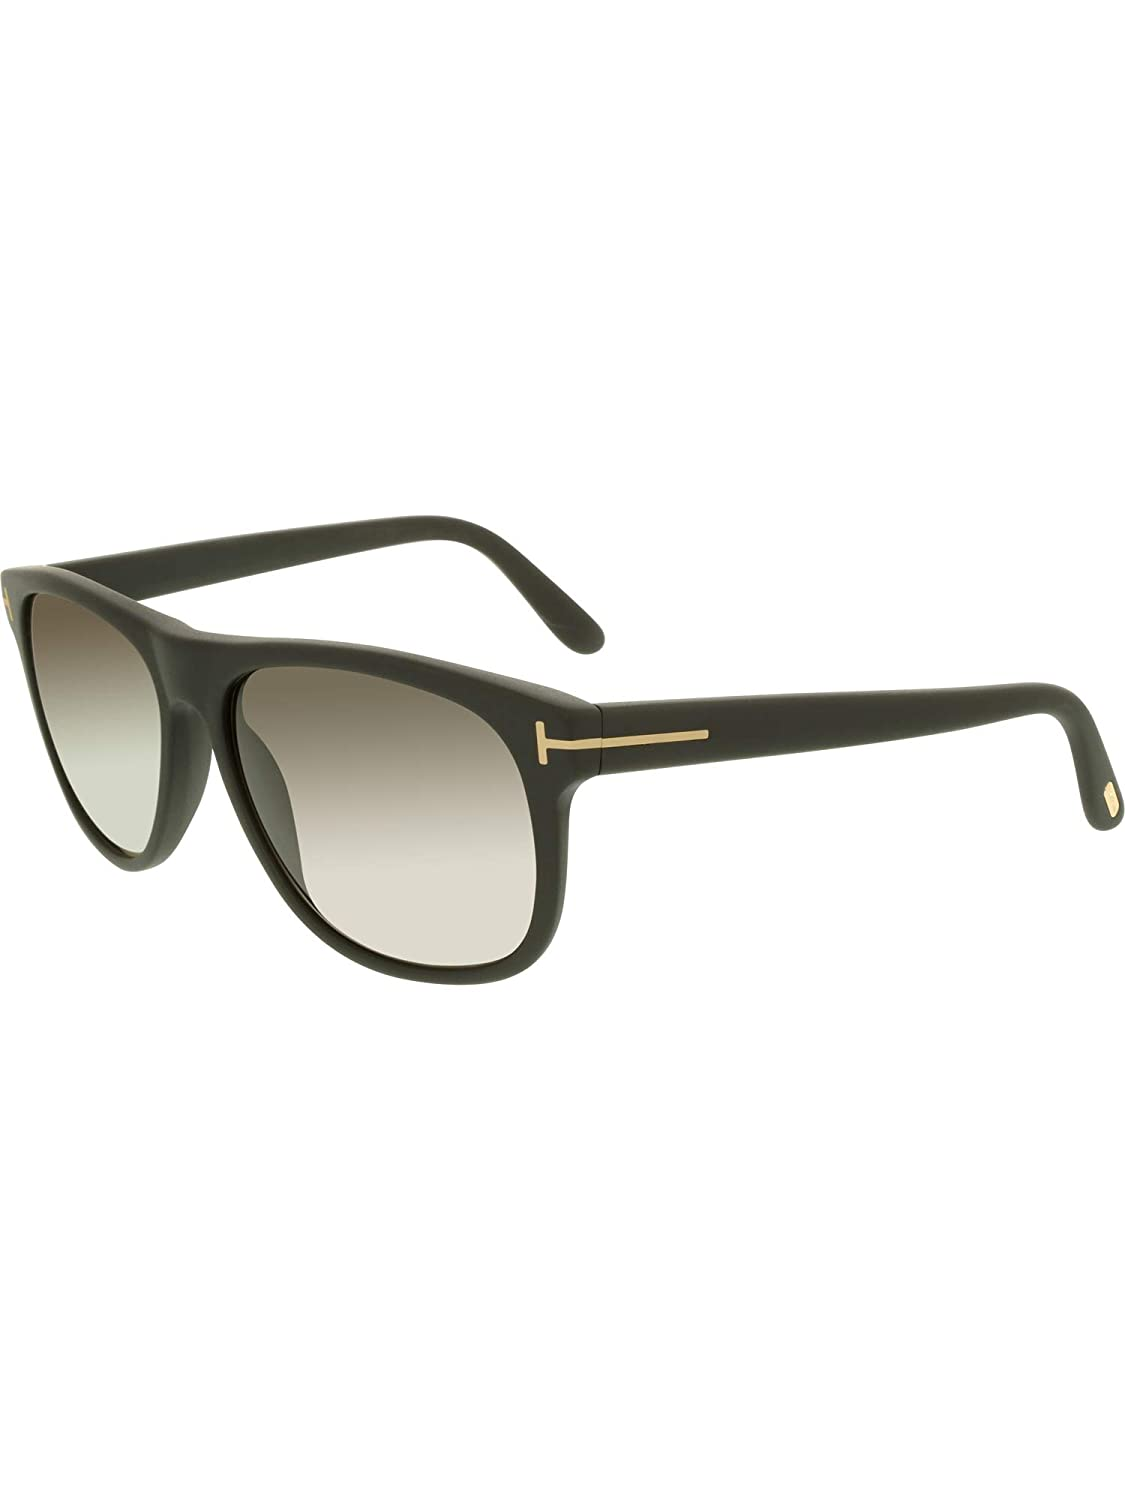 TALLA 58. Tom Ford Sonnenbrille Olivier (FT0236)